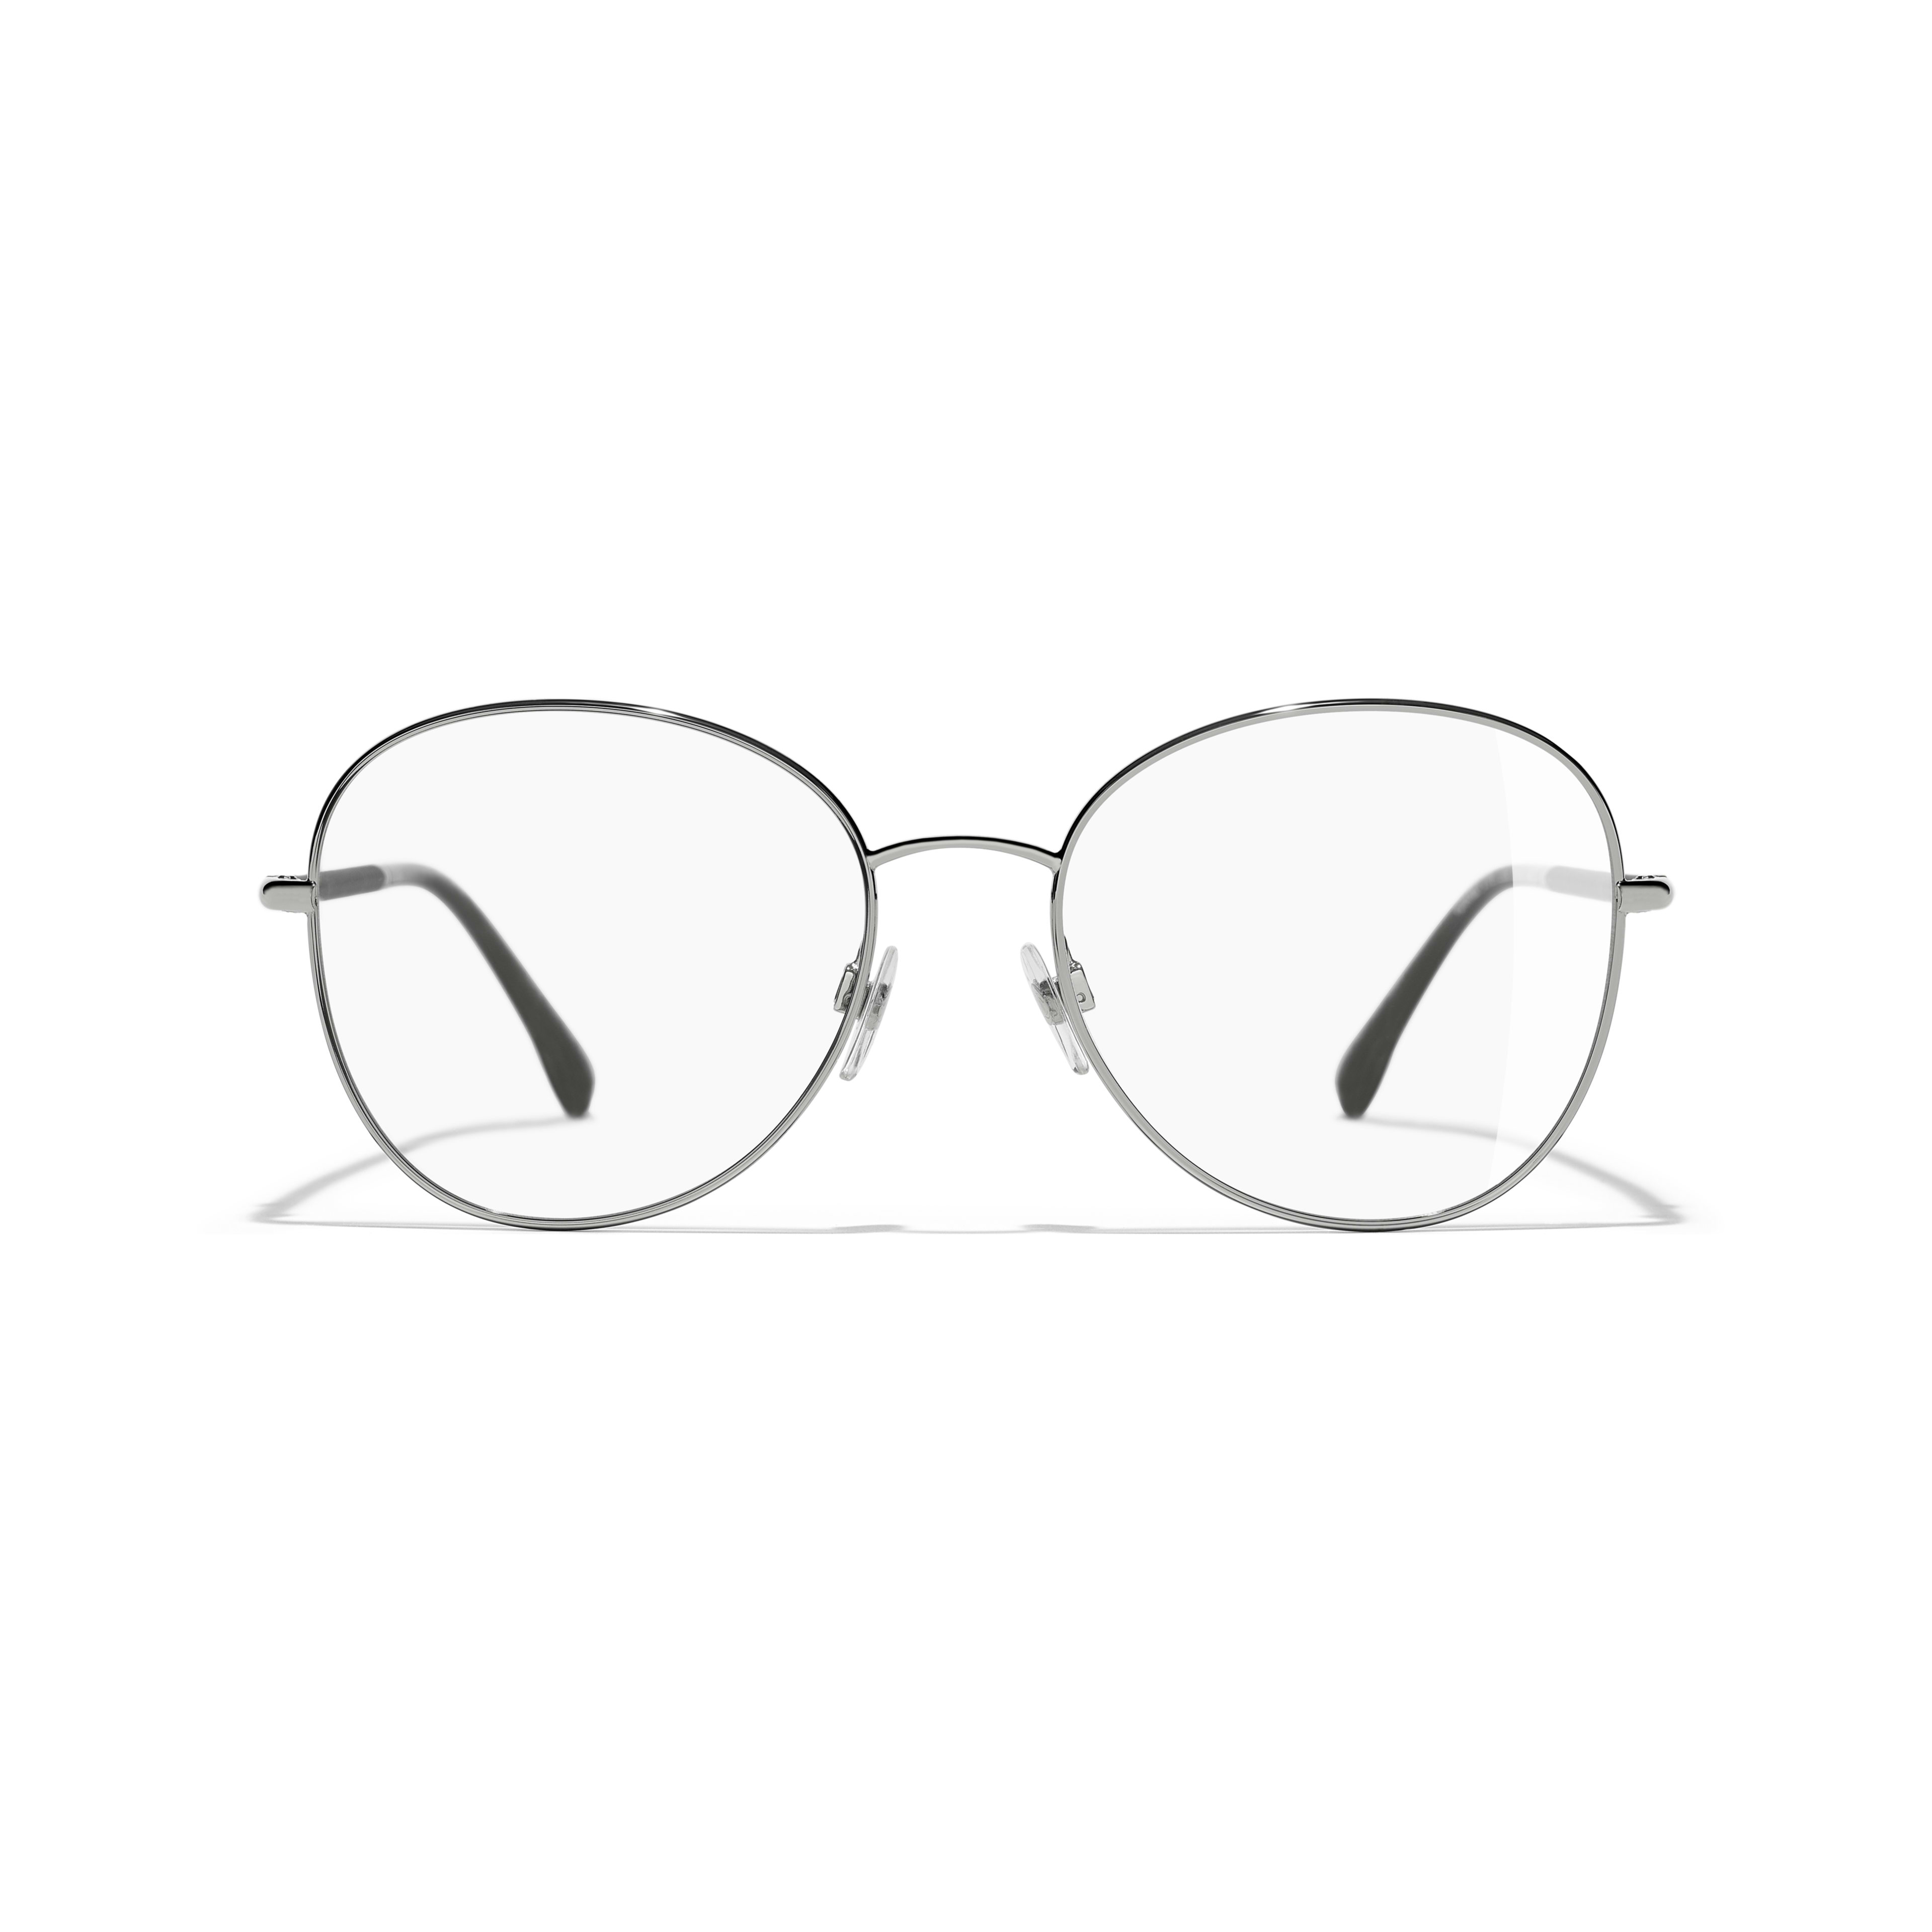 Round Eyeglasses - Silver - Metal - Alternative view - see full sized version